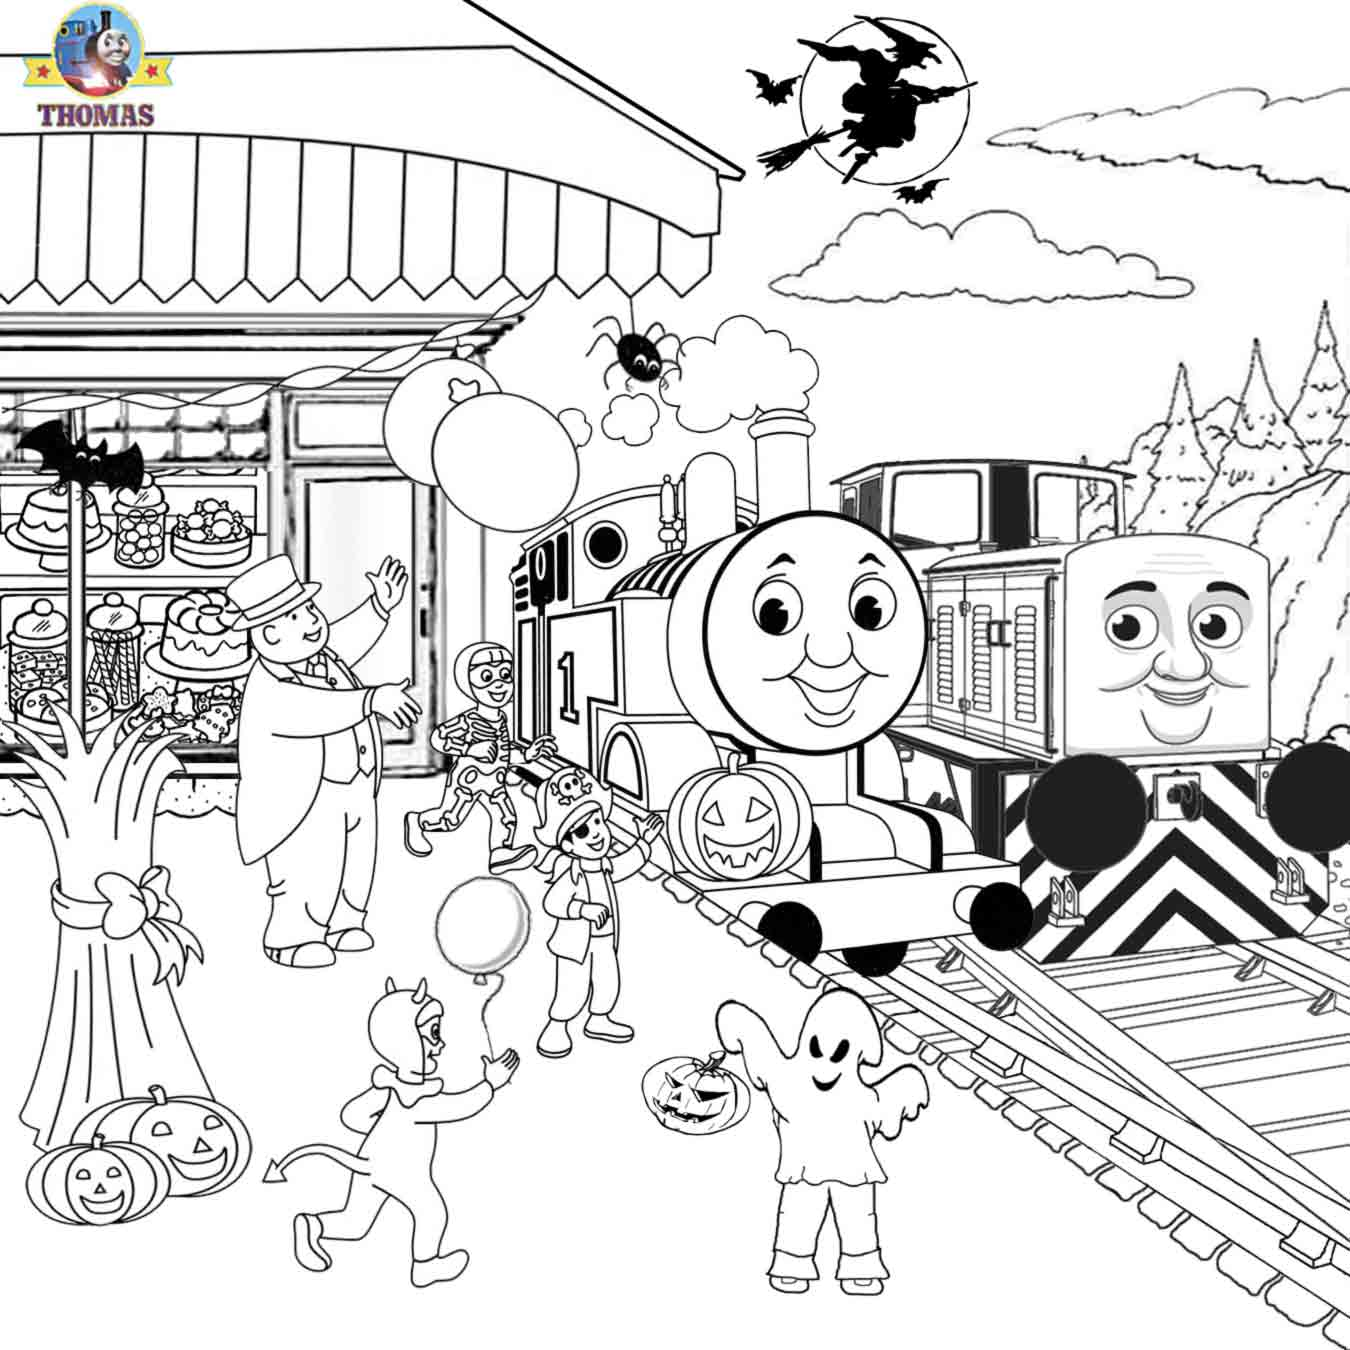 Diesel Den Thomas The Train Coloring Pages Free Printables Halloween Activities For Kids To Color In